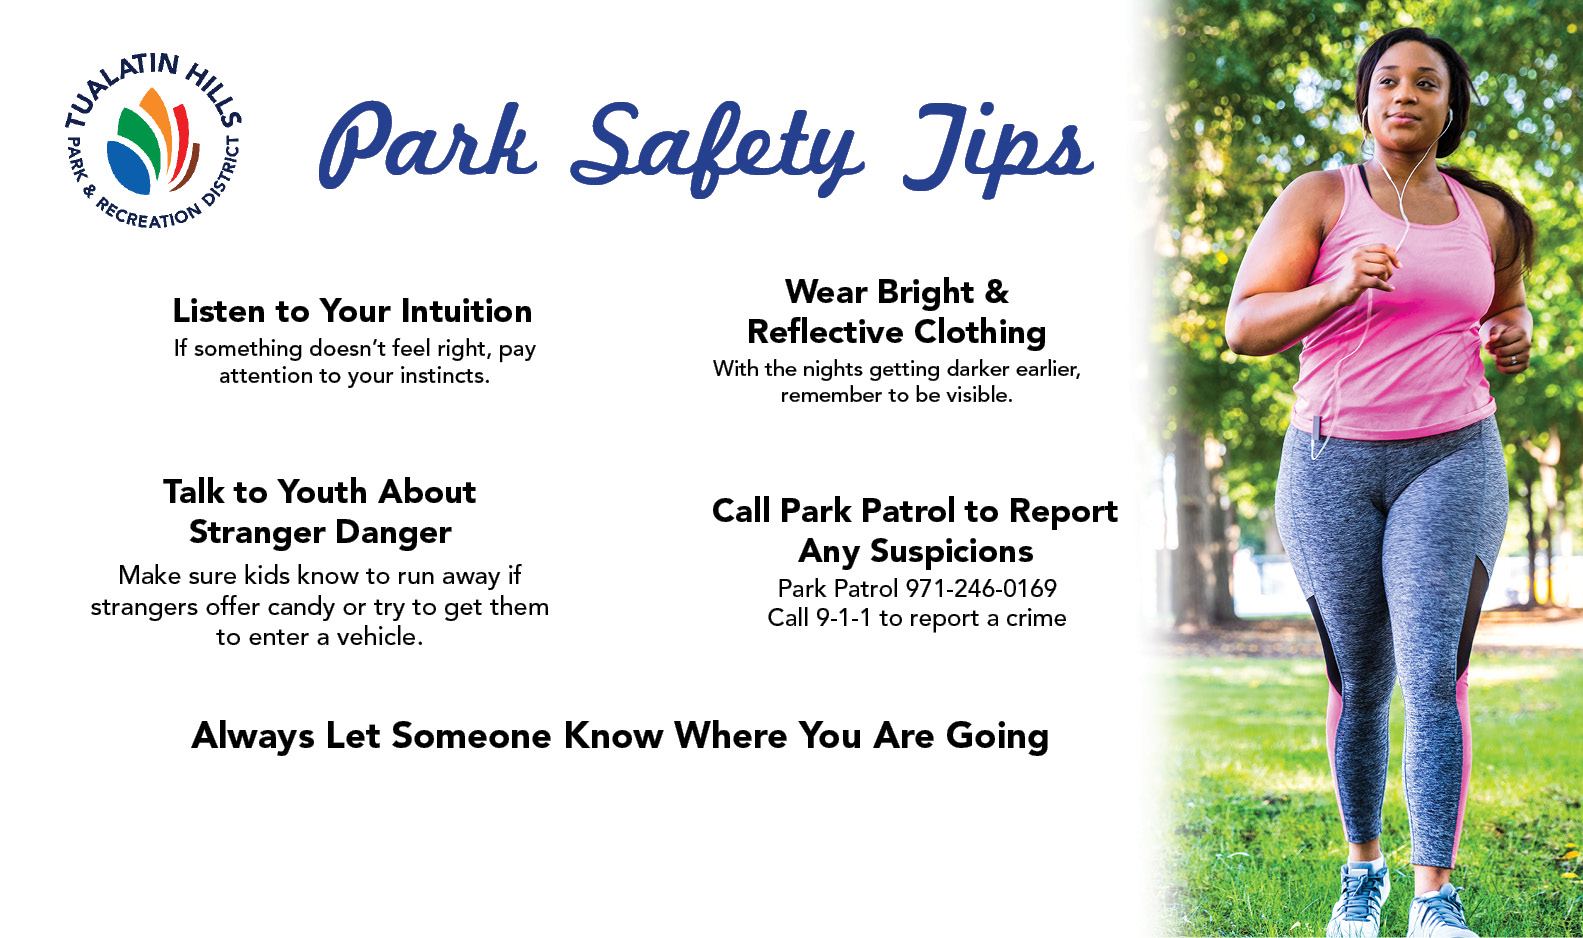 Stay Safe in the Park - with These 5 Tips